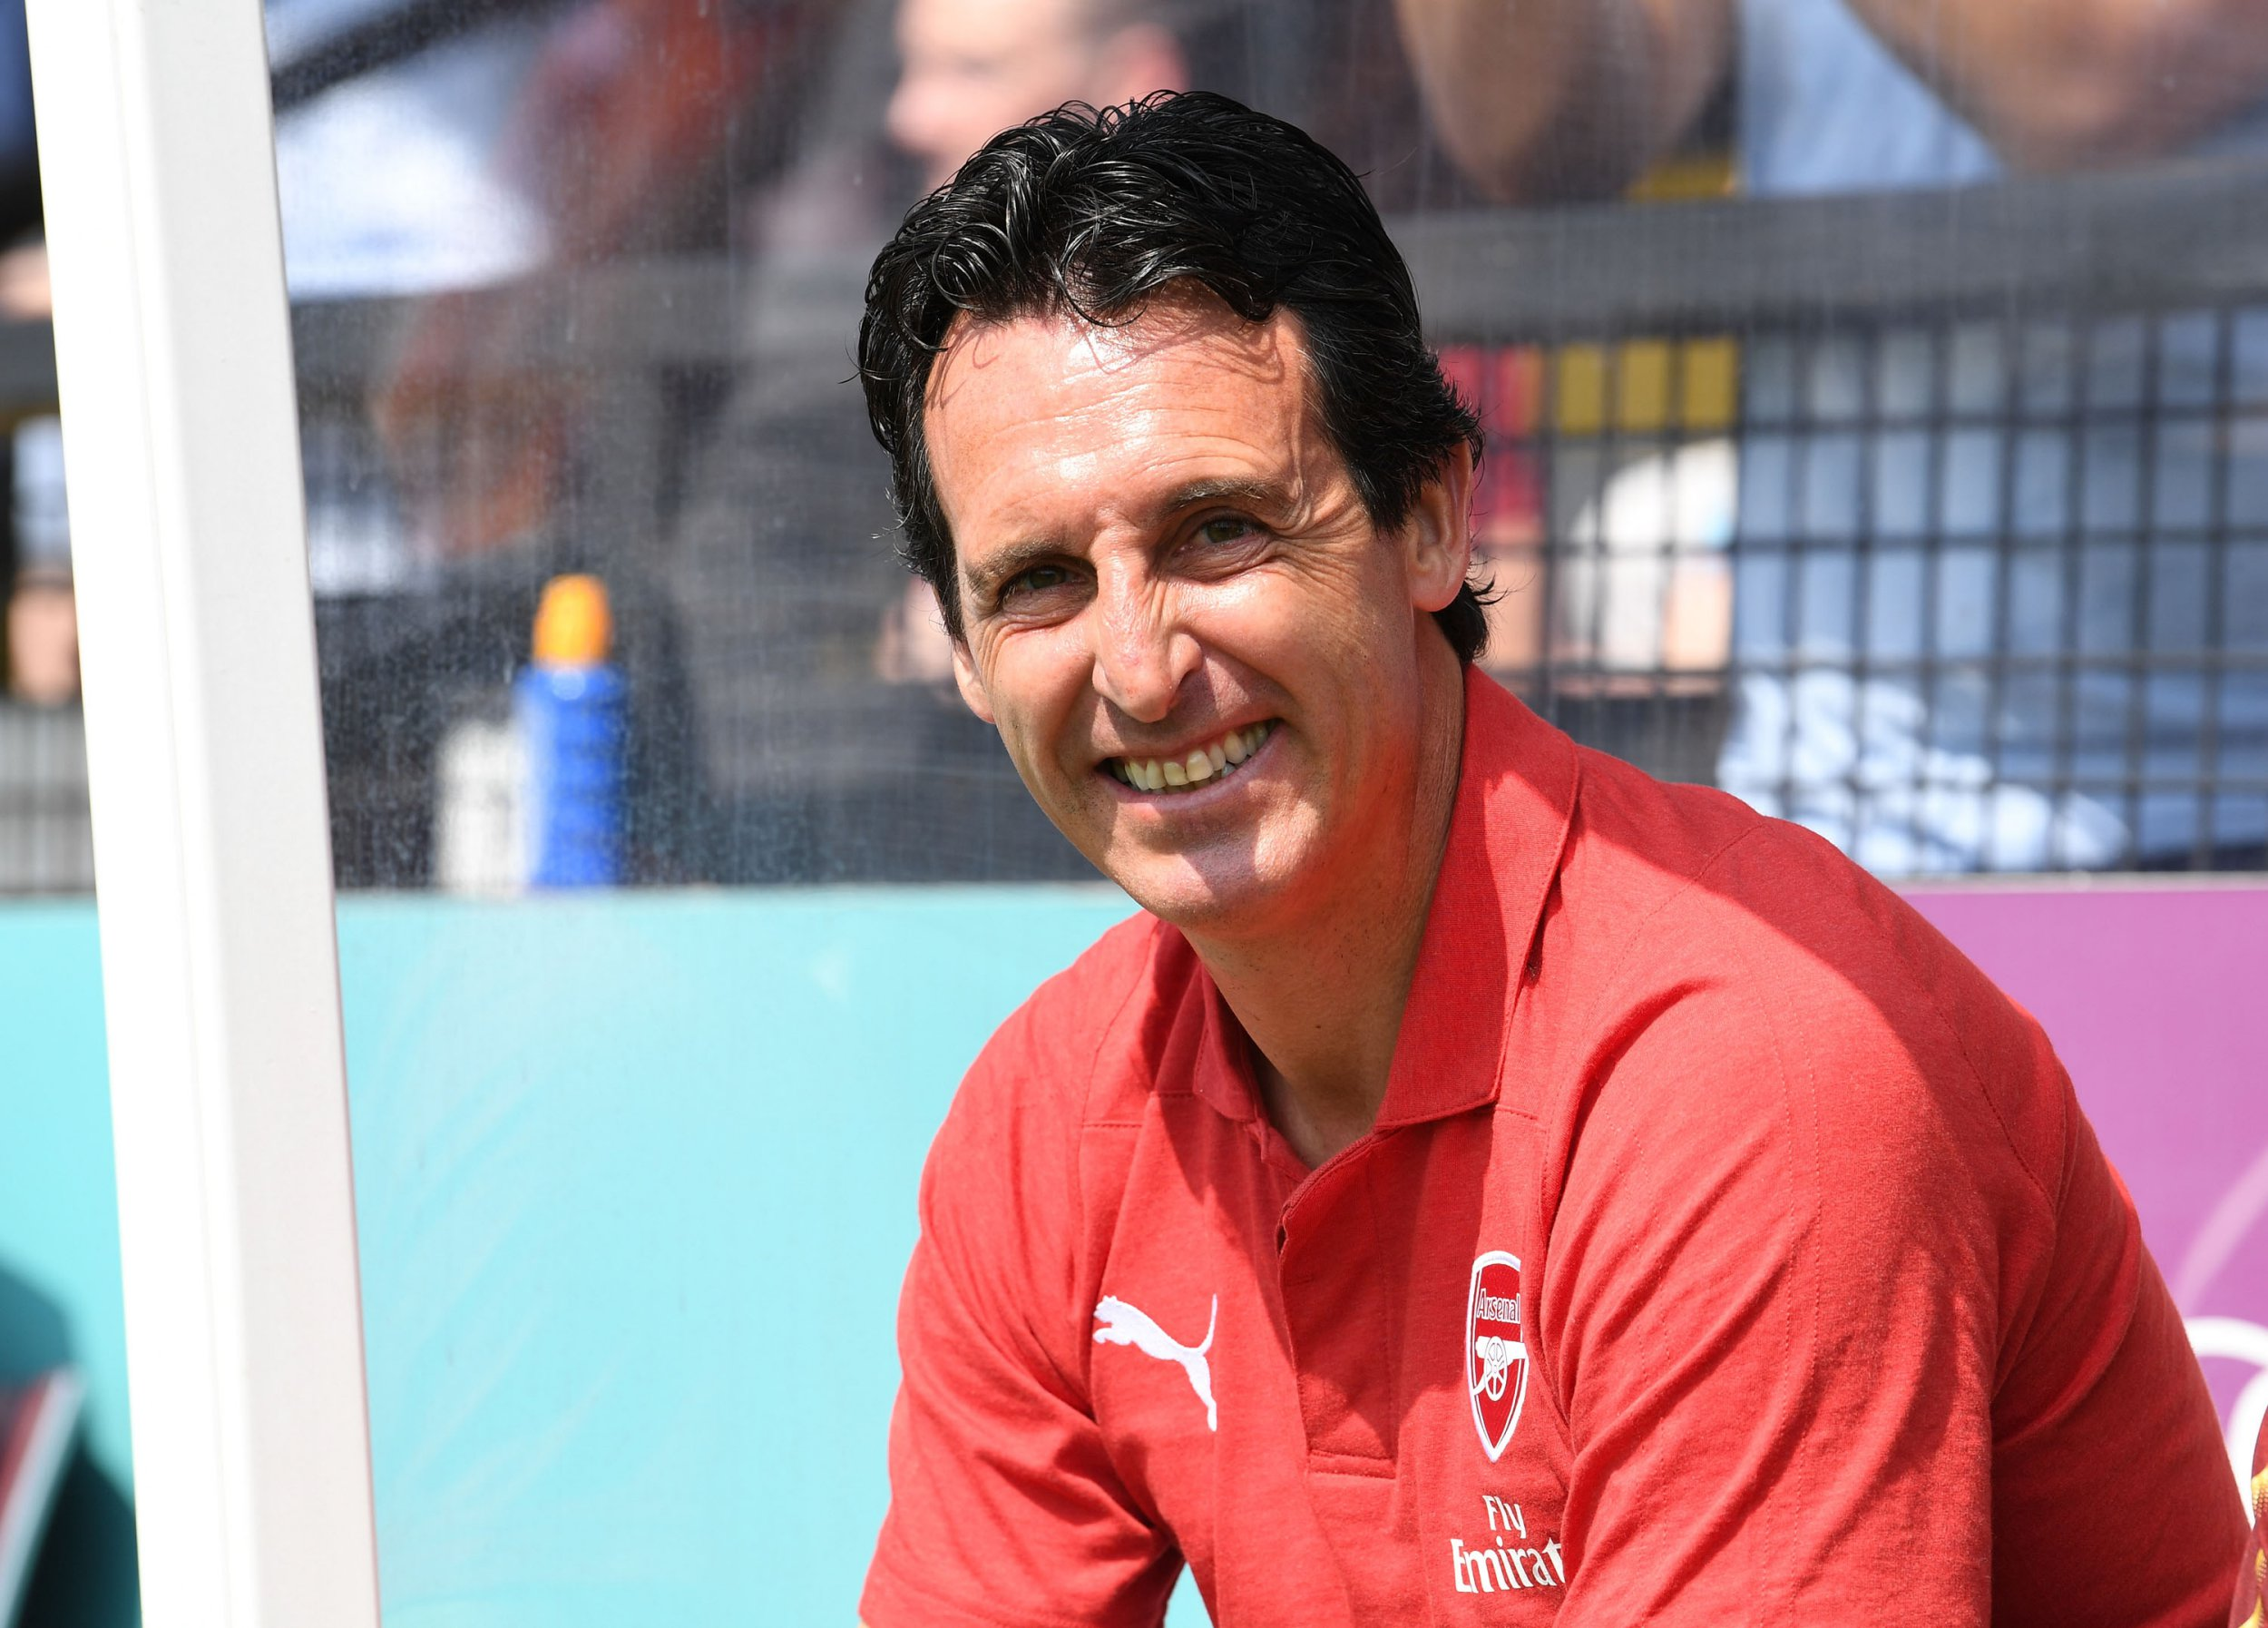 BOREHAMWOOD, ENGLAND - JULY 14: Arsenal Head Coach Unai Emery before the match between Borehamwood and Arsenal at Meadow Park on July 14, 2018 in Borehamwood, England. (Photo by David Price/Arsenal FC via Getty Images)